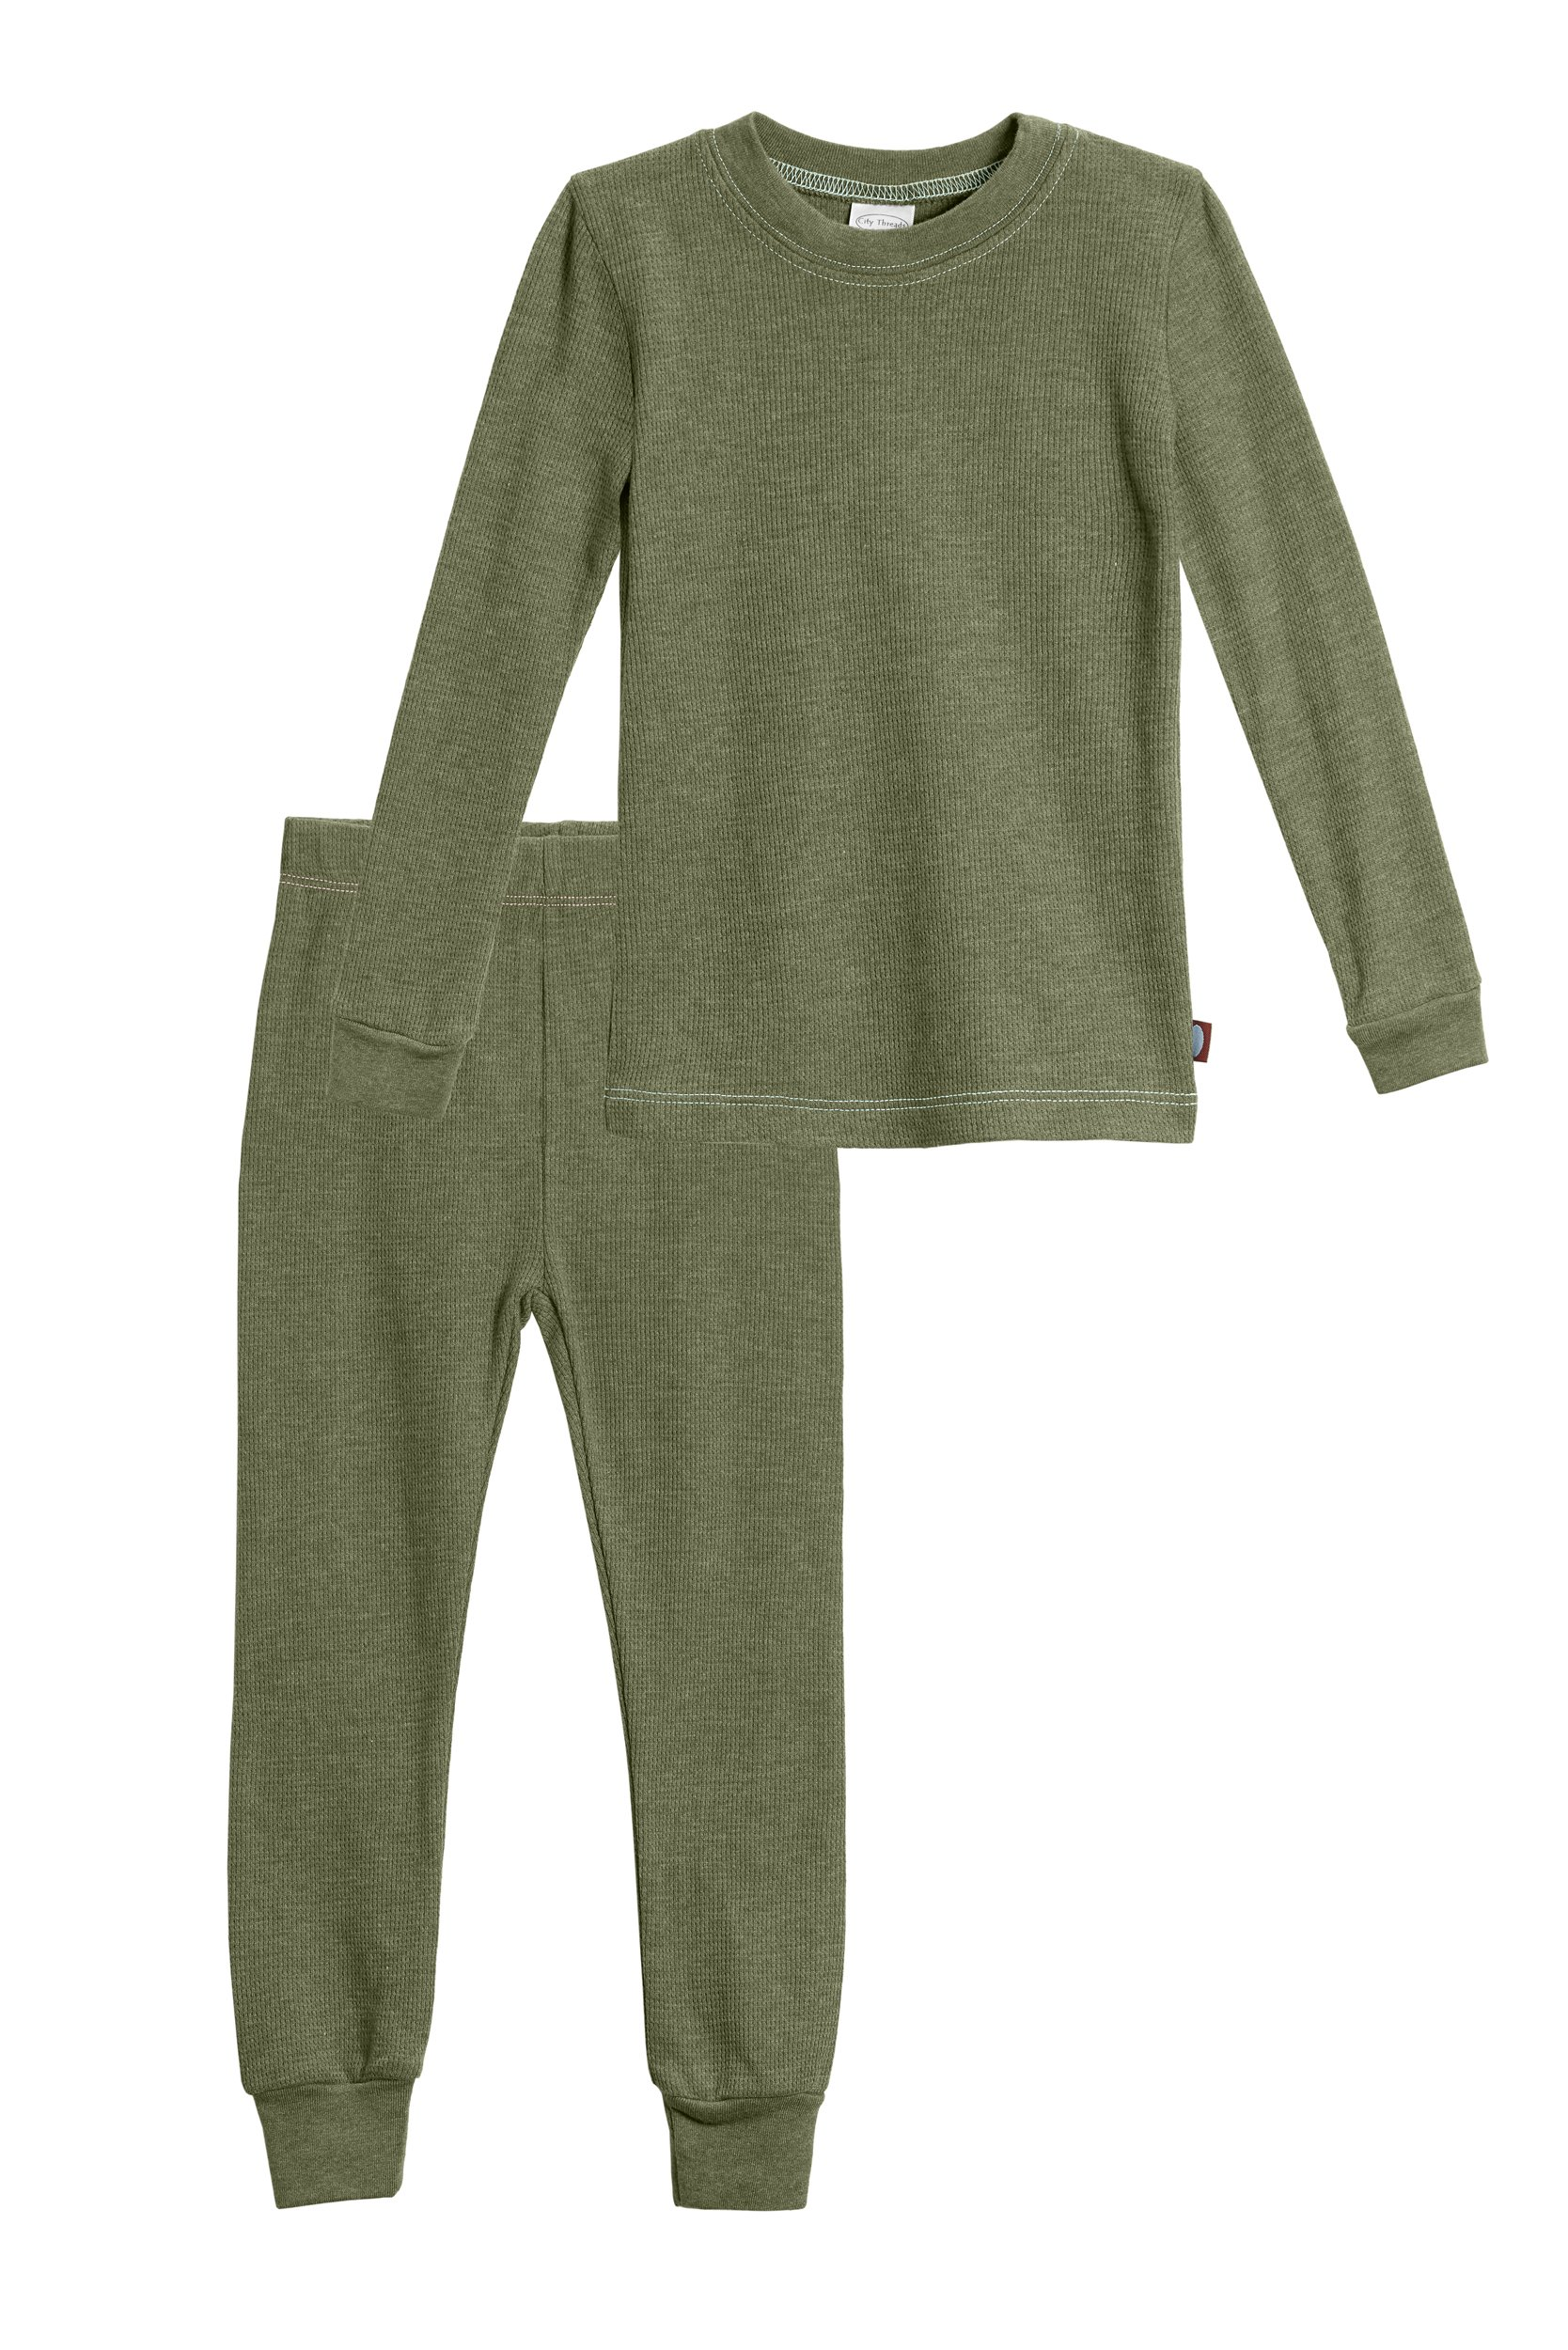 City Threads Little Boys Thermal Underwear Set Perfect For Sensitive Skin SPD Sensory Friendly, Olive, 3T by City Threads